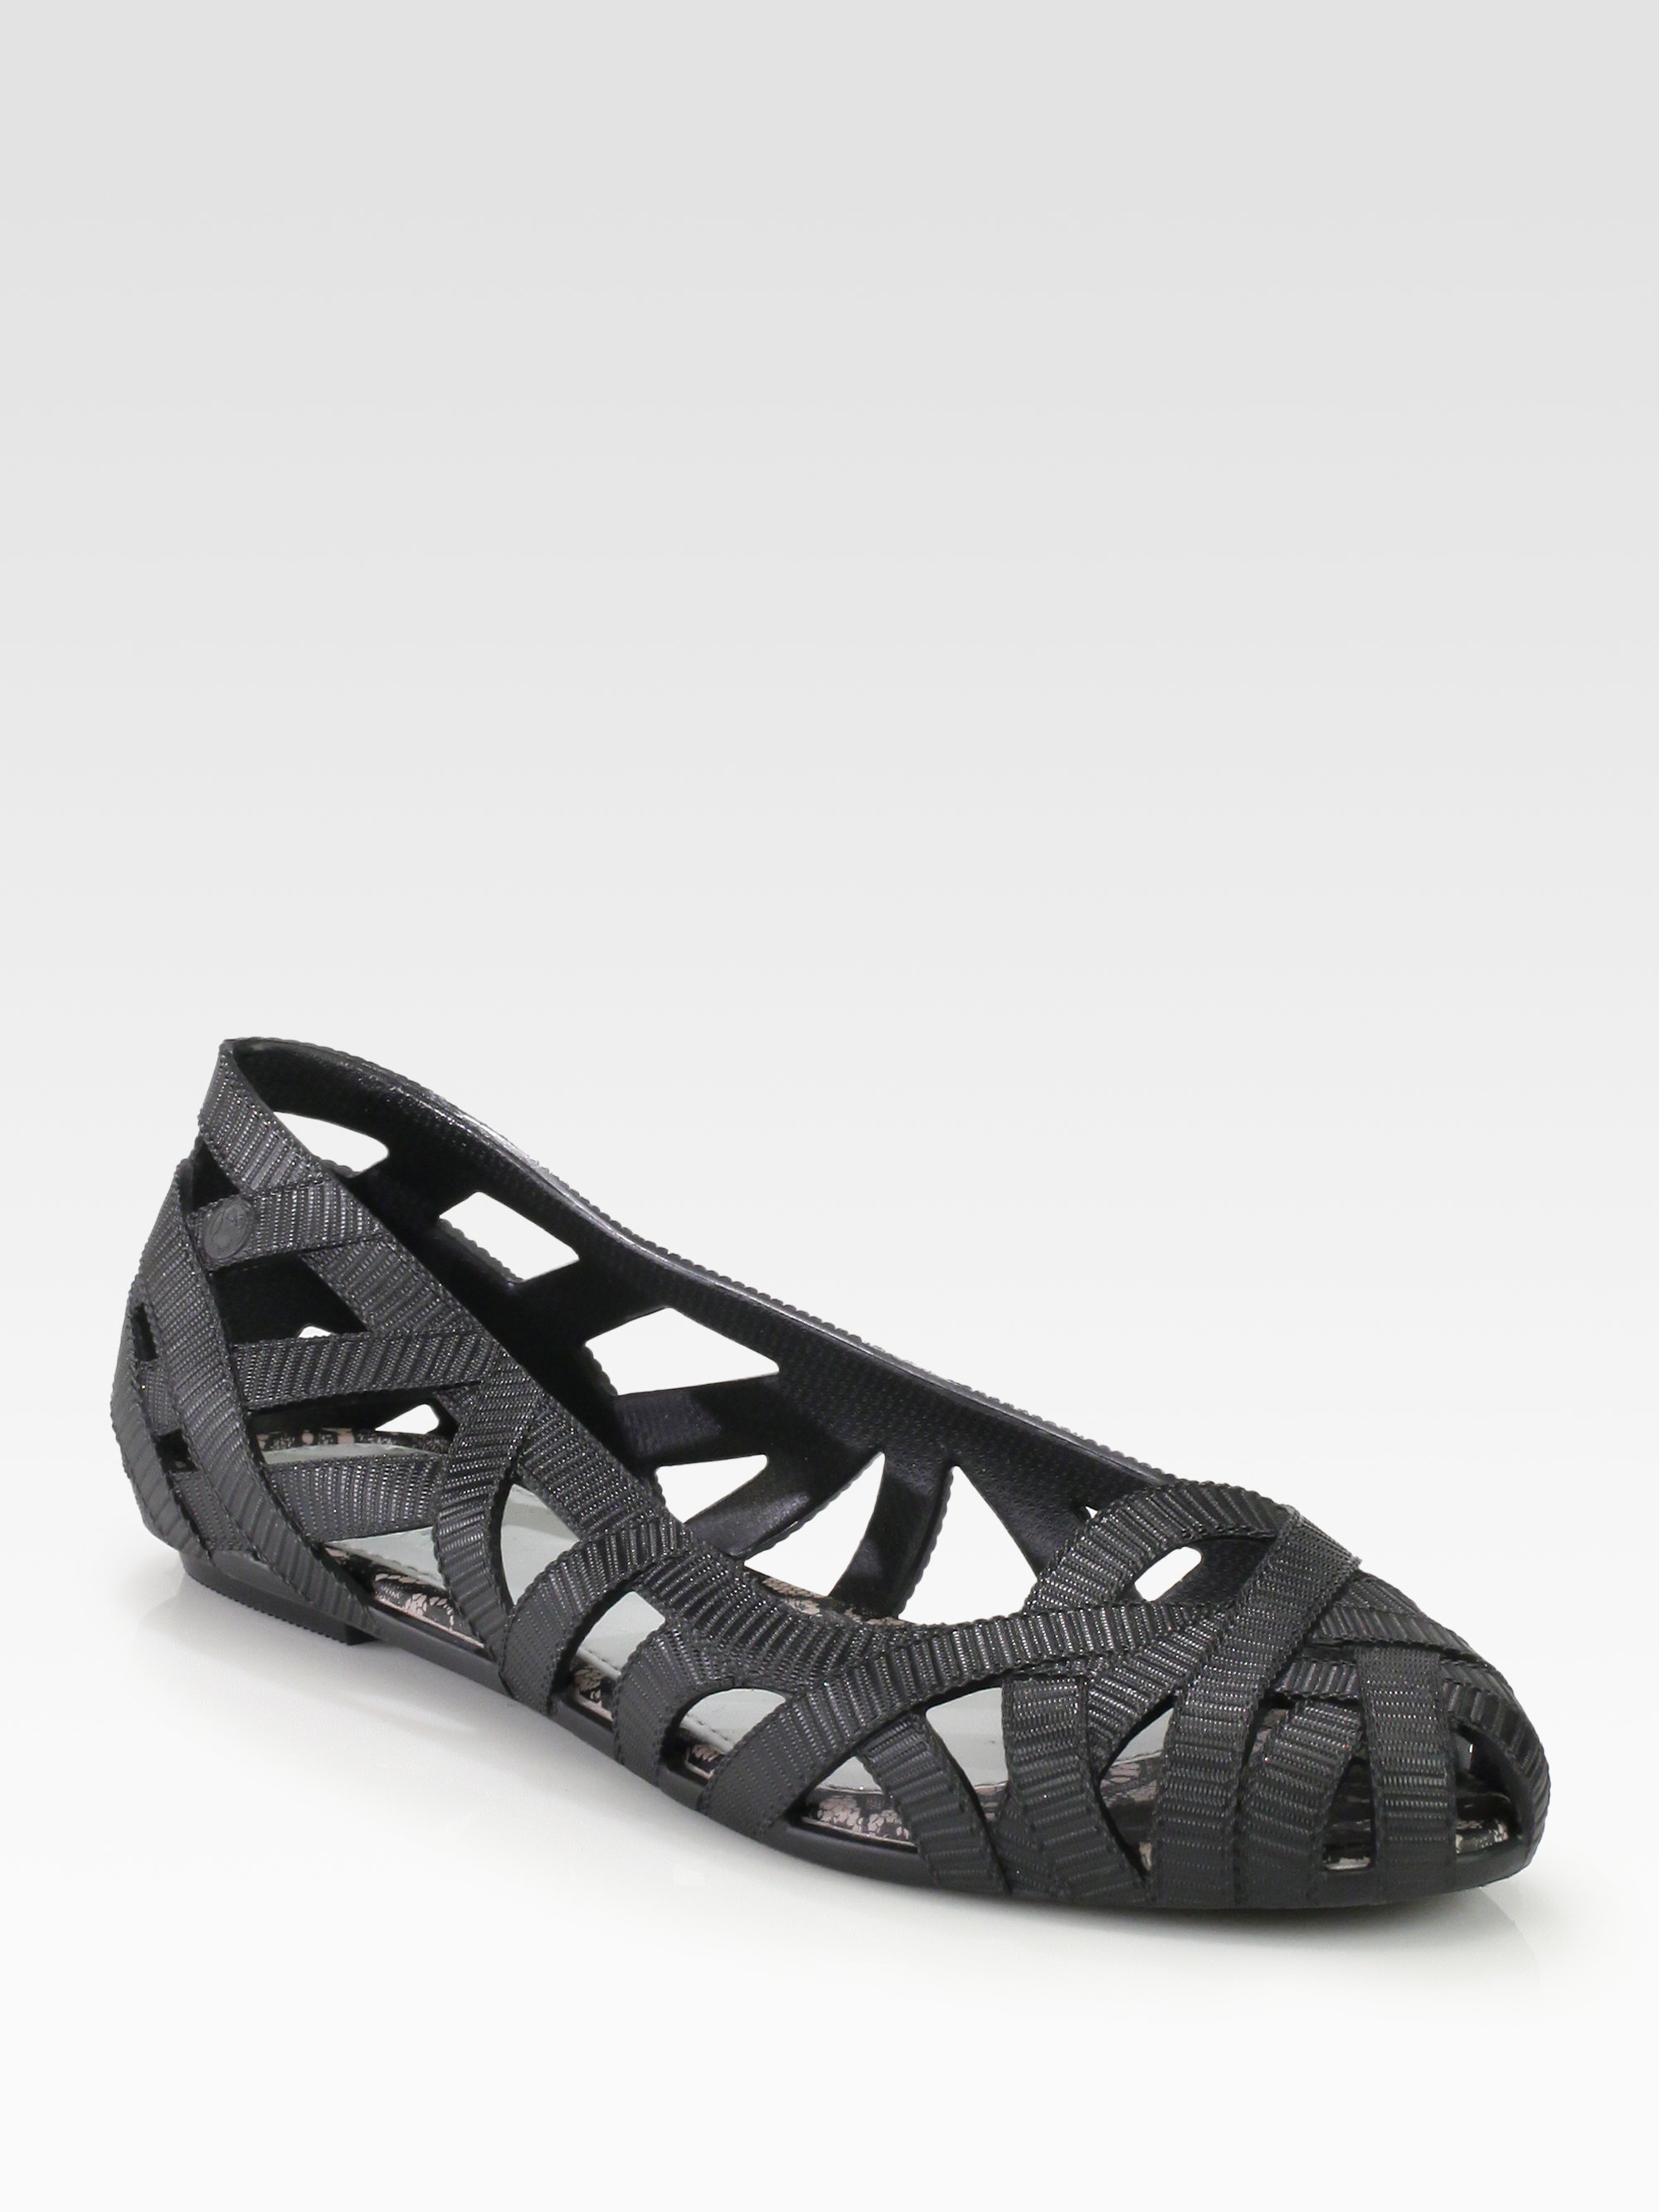 c9314f47ca49 Lyst - Melissa Jean and Jason Wu Woven Jelly Ballet Flats in Black